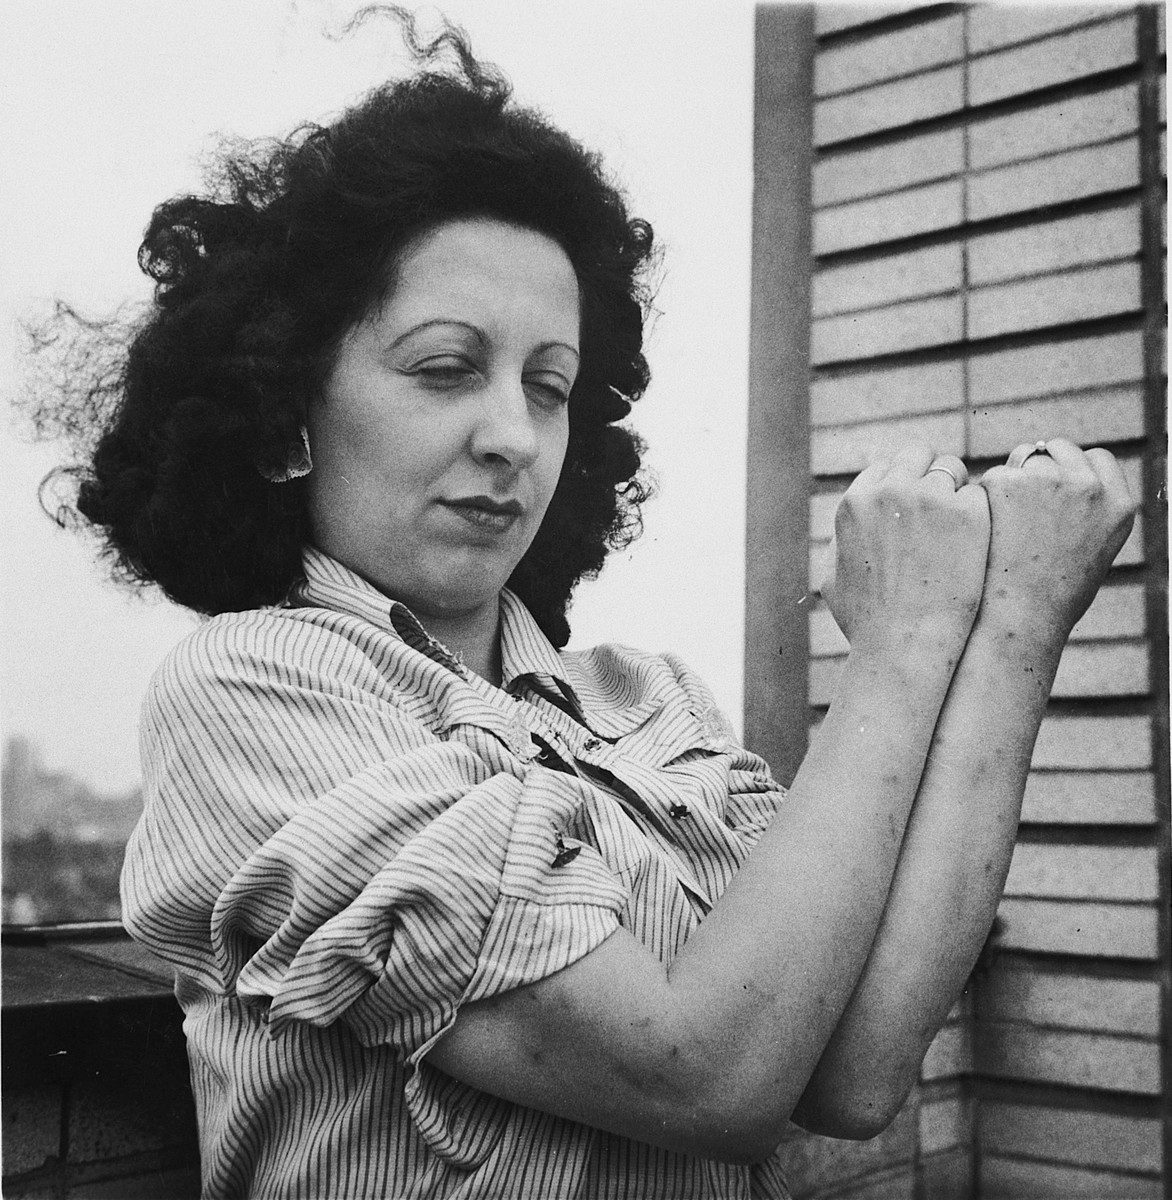 Mme. Margueritte Paquet shows the scarring on her arms as a result of her torture in the Breendonck internment camp.